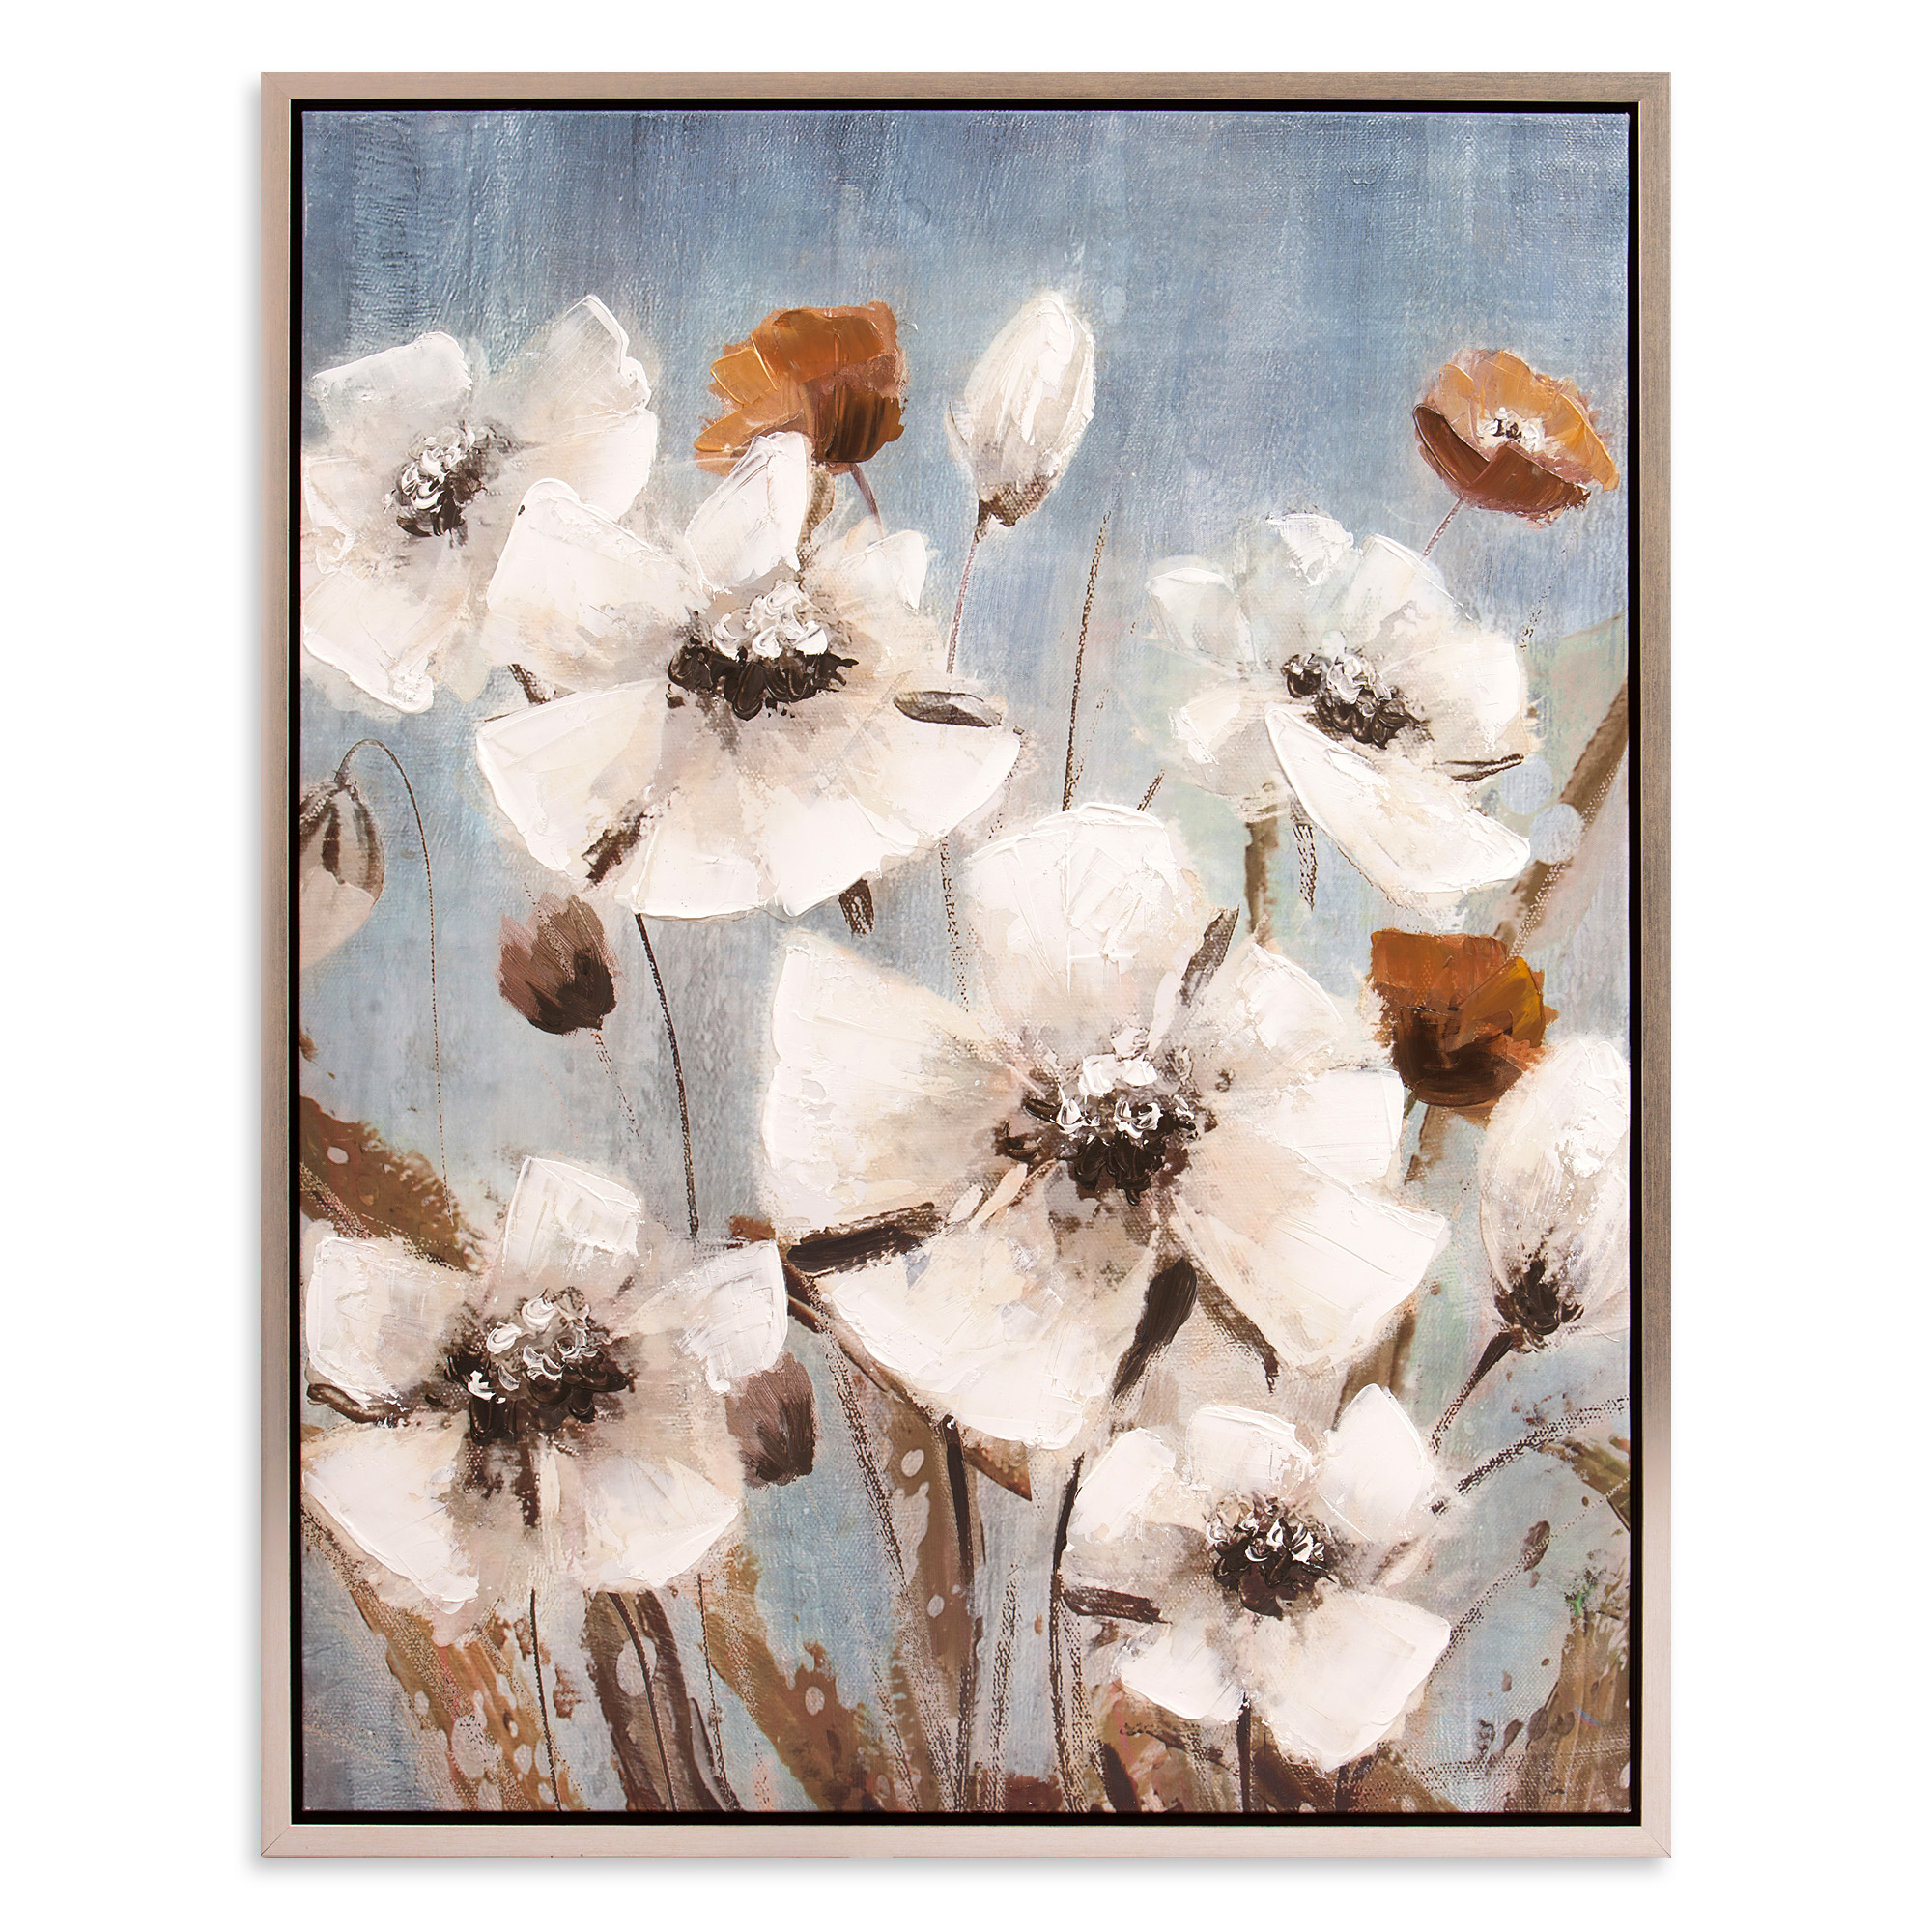 Patton Wall Decor White Poppy Field Floral Framed Canvas Art by Patton Wall Decor